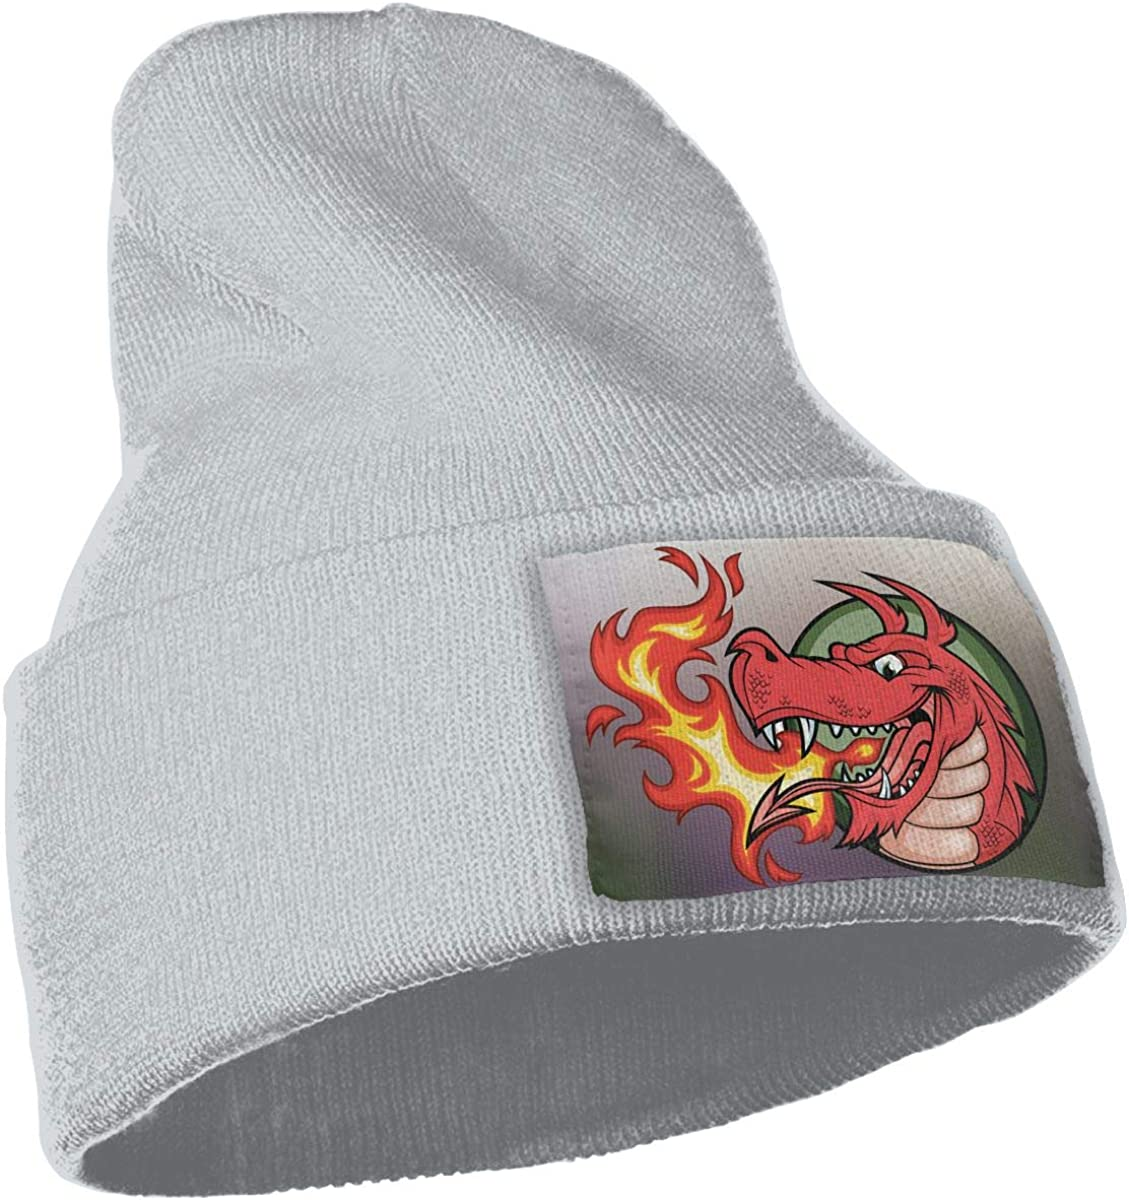 Fire Dragon Hat for Men and Women Winter Warm Hats Knit Slouchy Thick Skull Cap